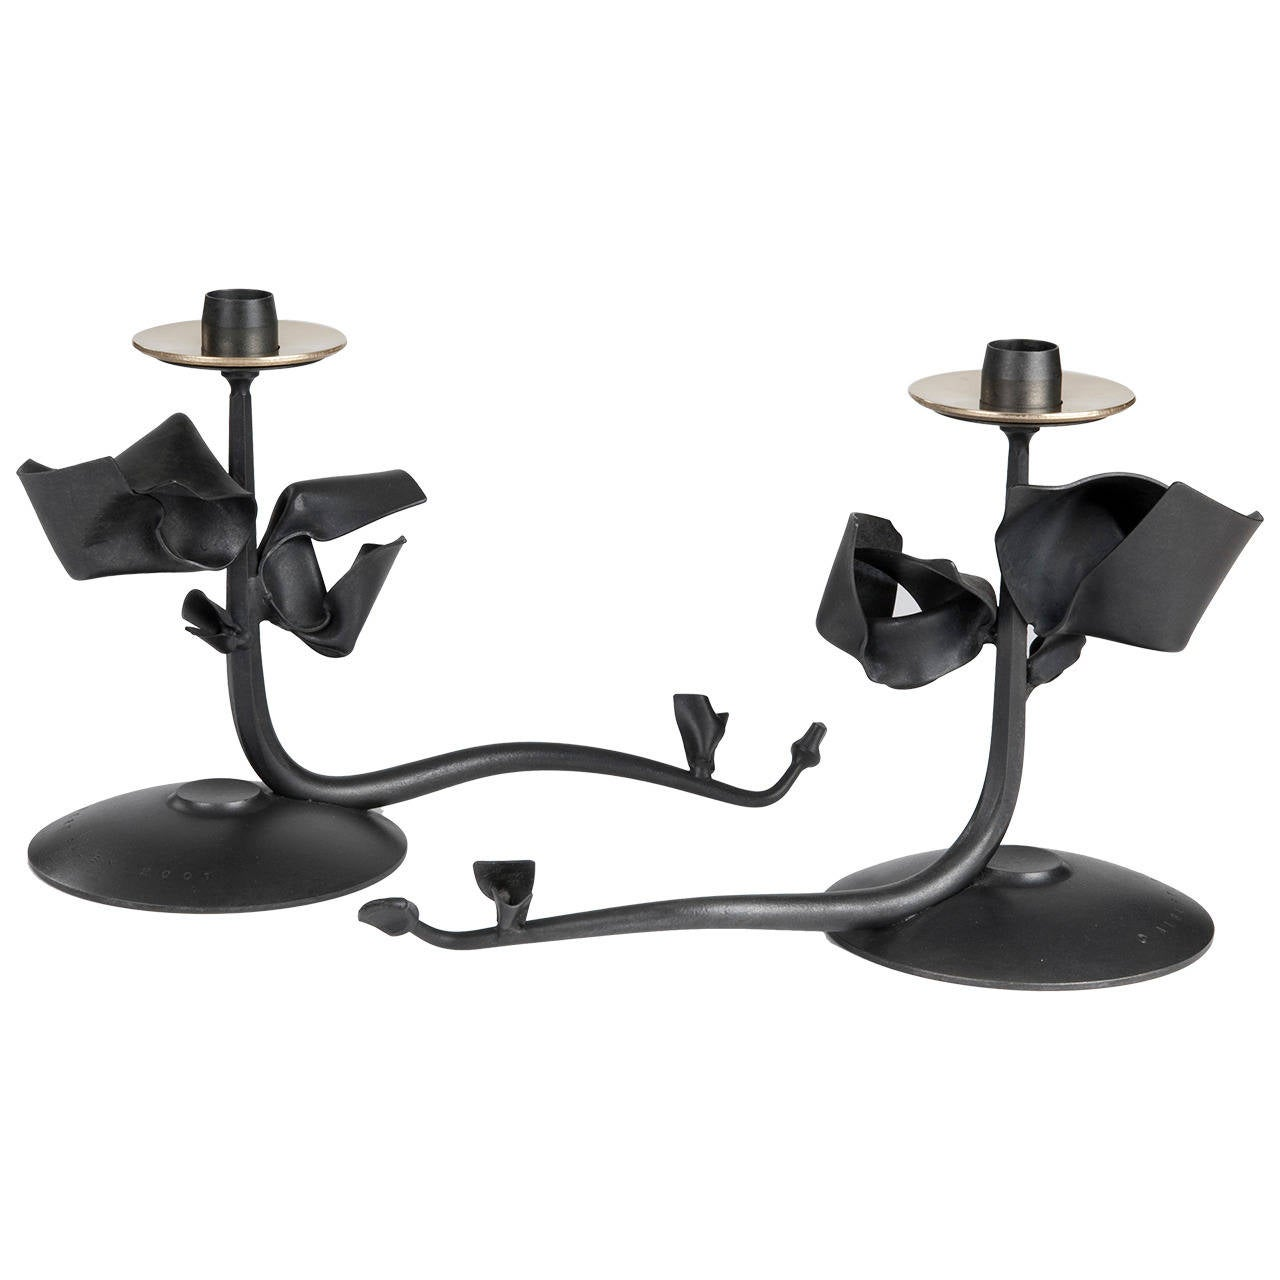 "Pair of Albert Paley ""Tuft Candleholders"", Blackened Metal and Brass, 2001"